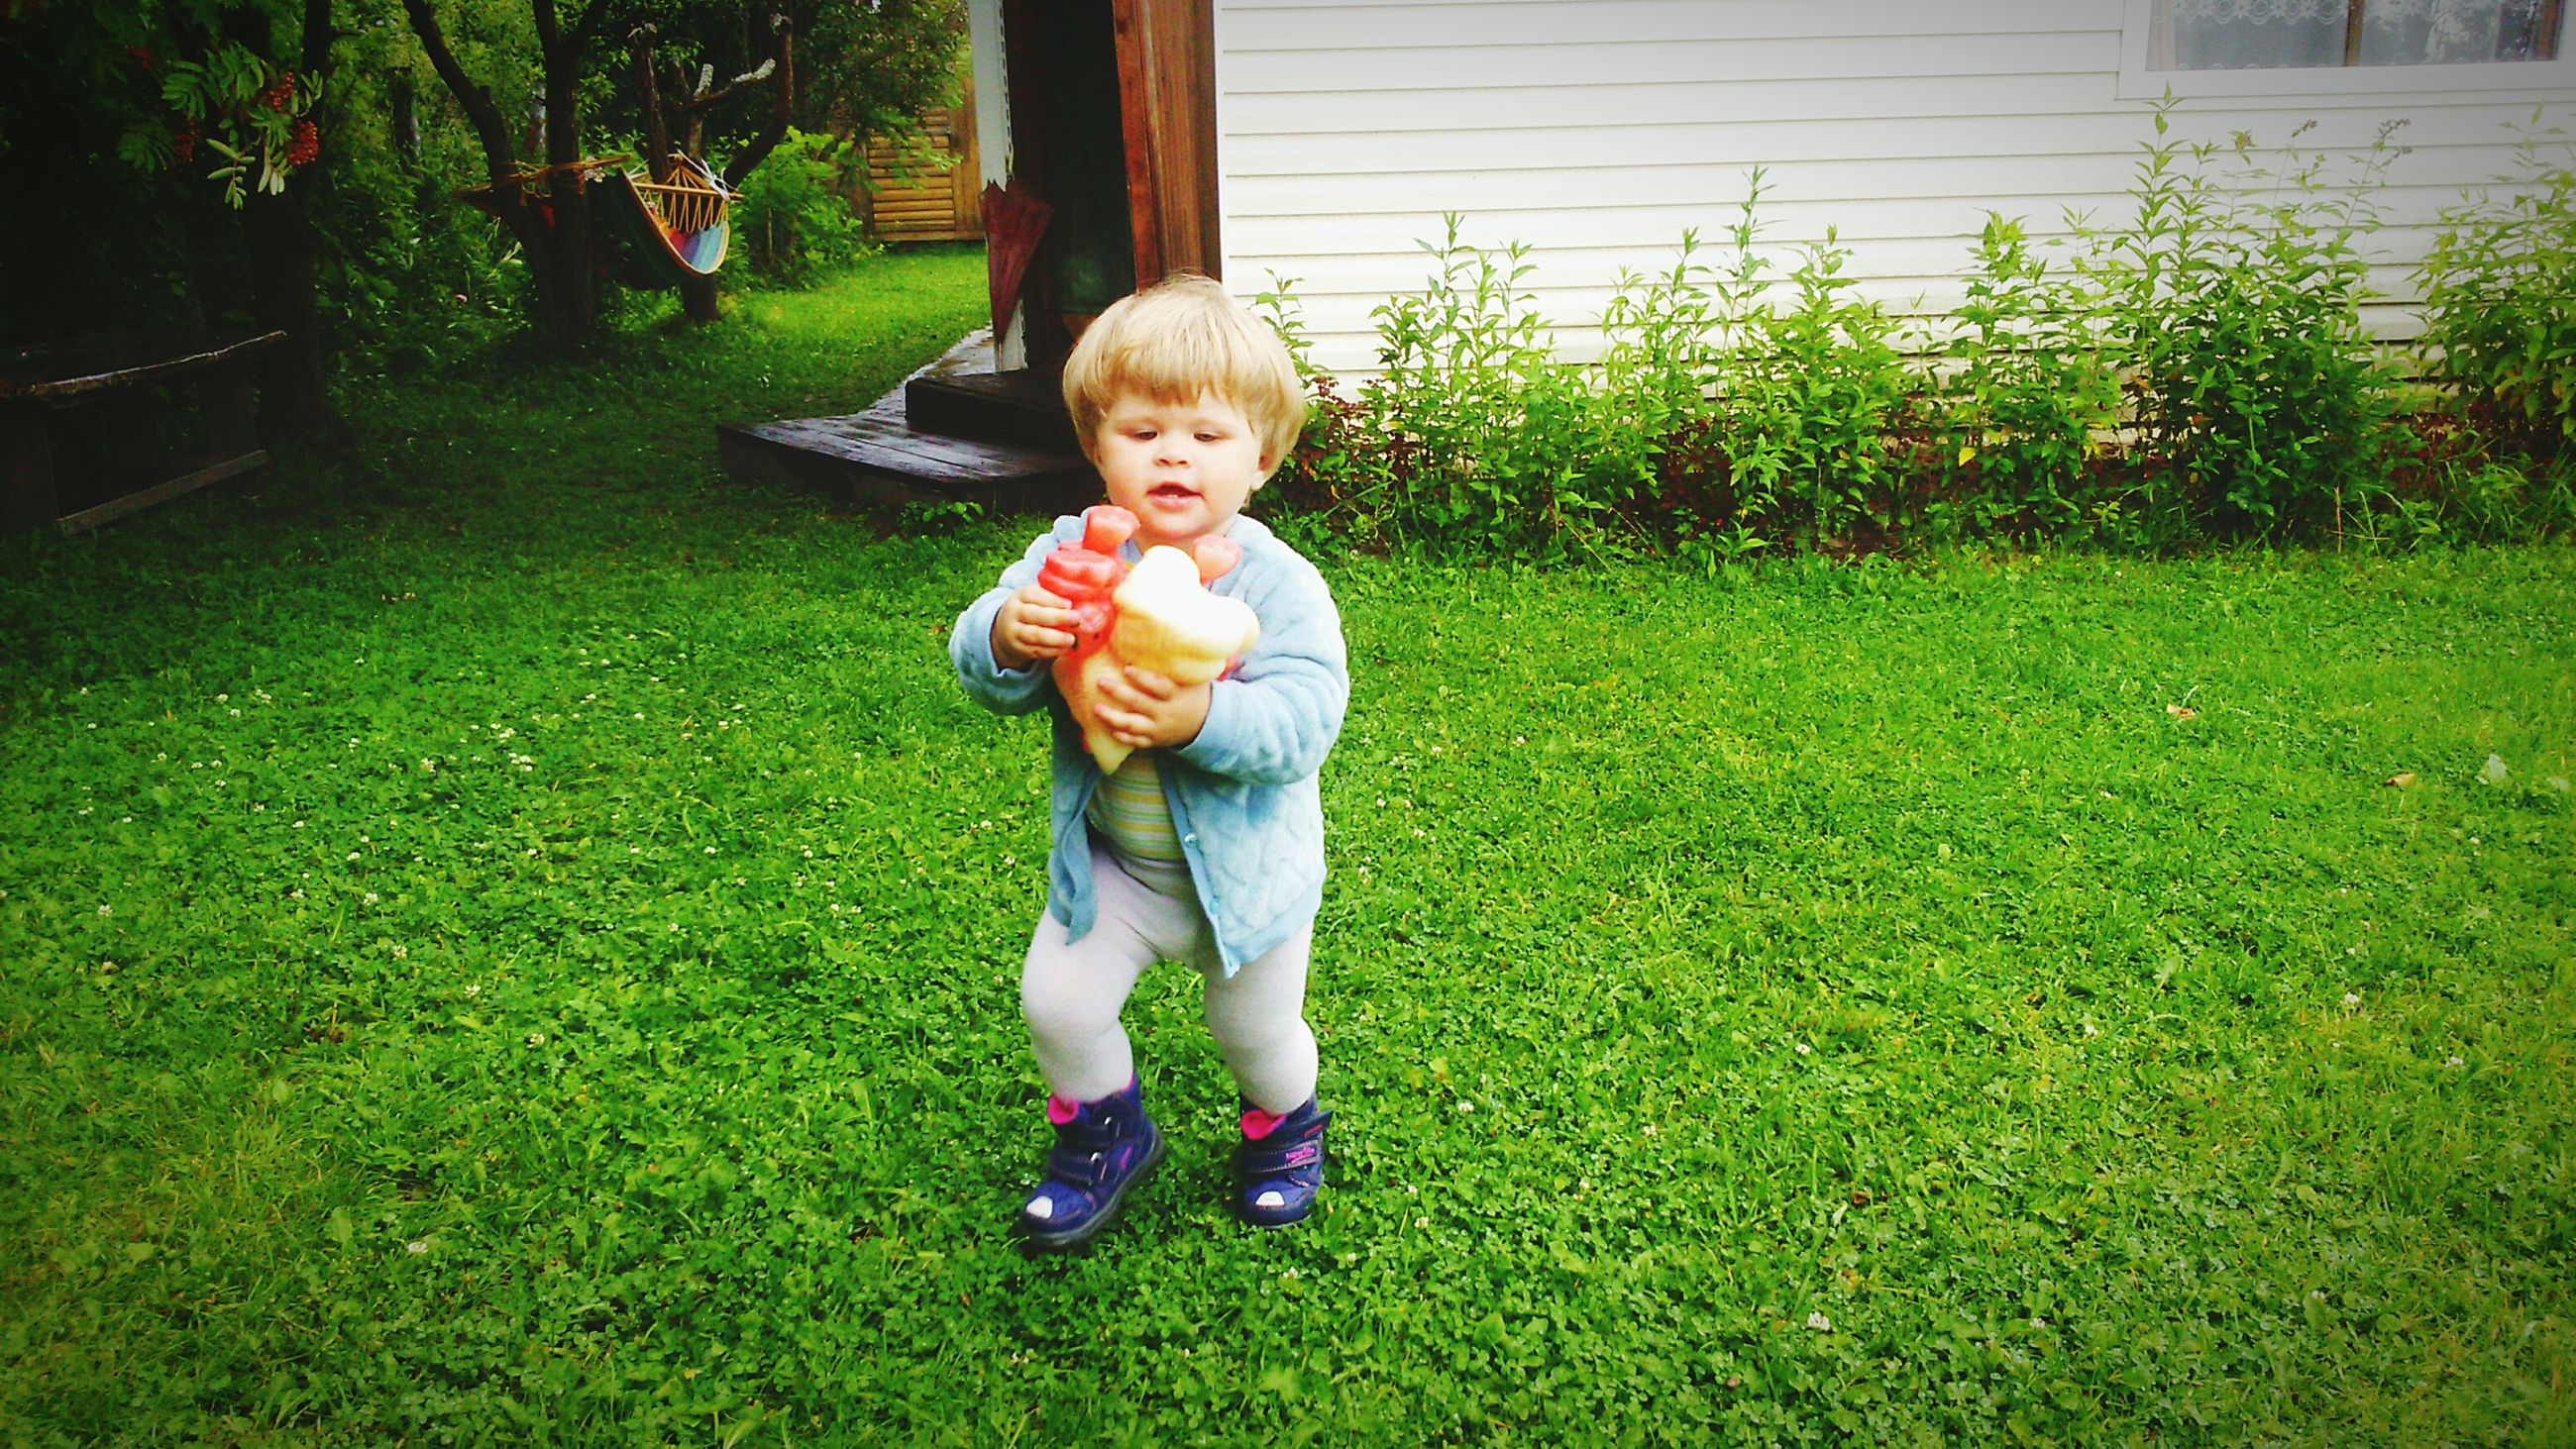 childhood, person, grass, elementary age, cute, full length, innocence, casual clothing, girls, portrait, boys, lifestyles, happiness, smiling, green color, playful, leisure activity, park - man made space, playing, grassy, fun, lawn, front or back yard, day, enjoyment, outdoors